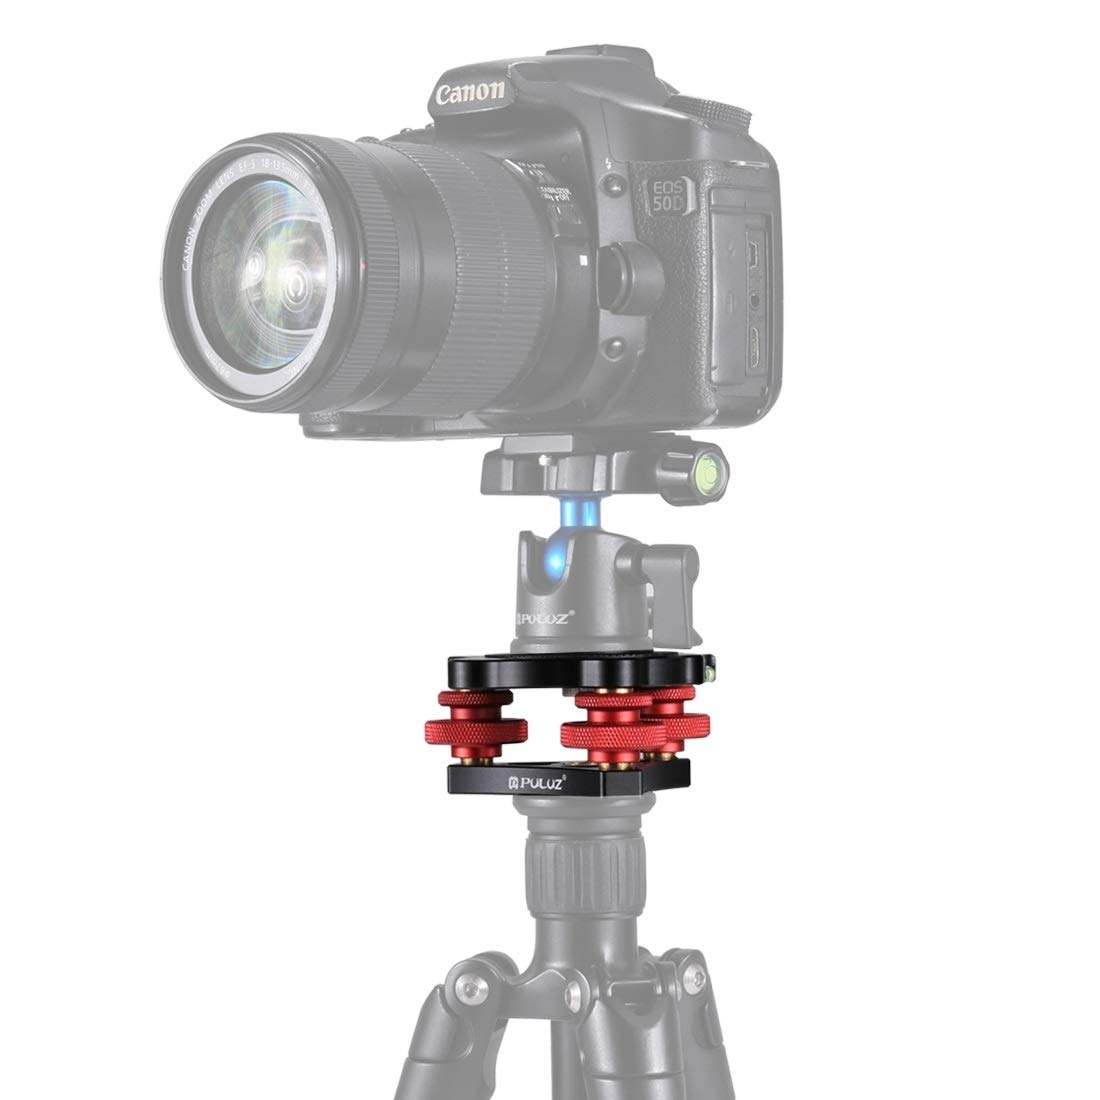 HEGUANGWEI Camera Mount Aluminum Alloy Adjustment Dials Leveling Base Ball Head for Camera Tripod Head Photography by HEGUANGWEI